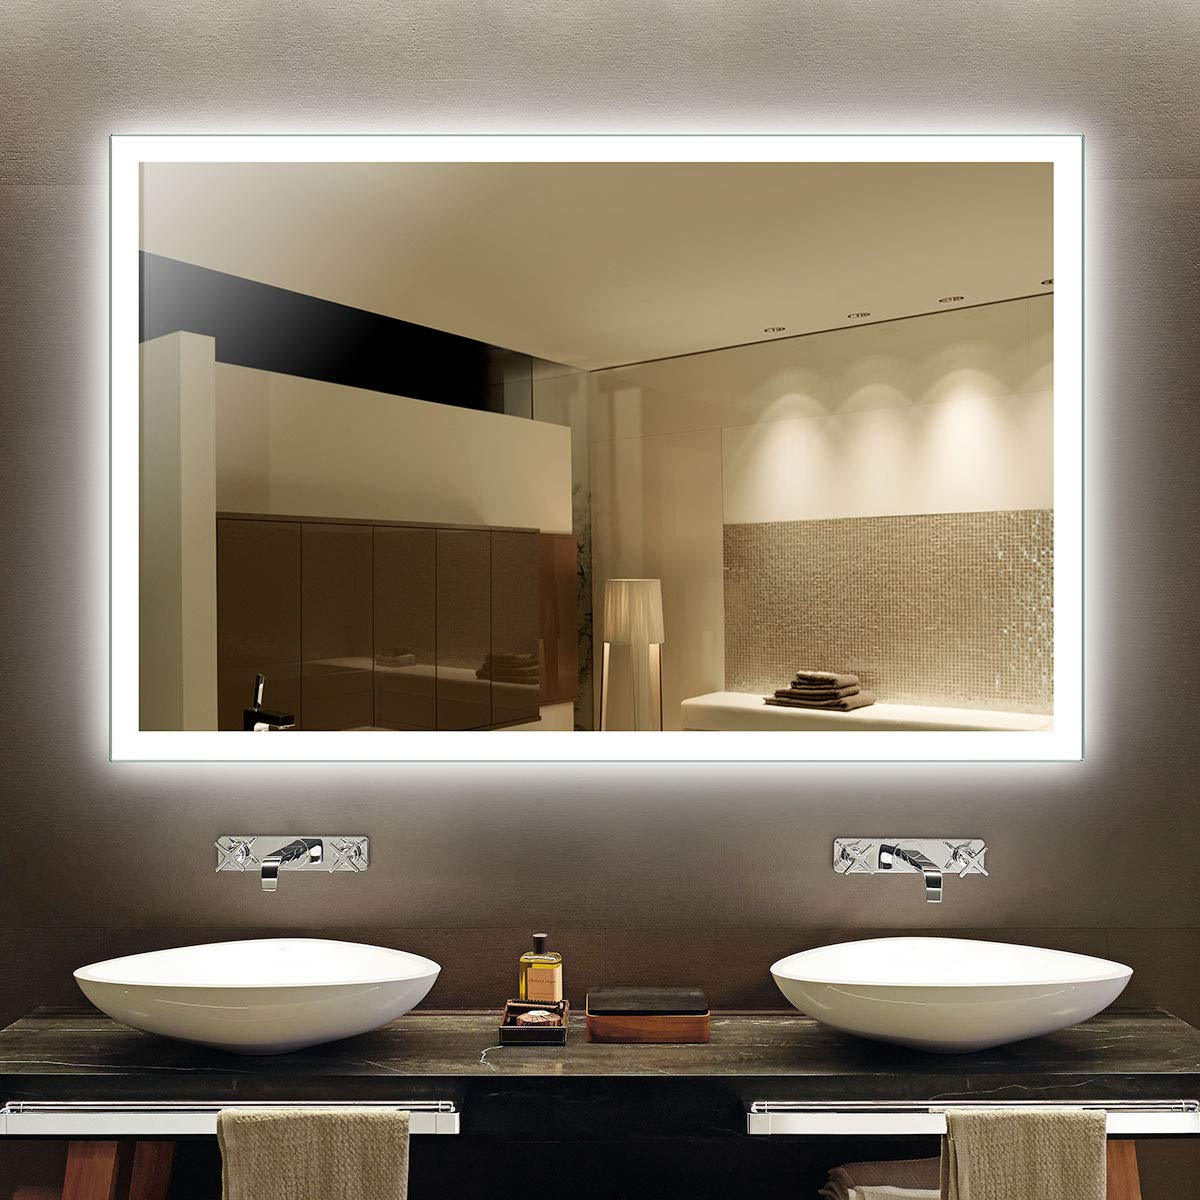 BHBL 55 x 36 in LED Lighted Rectangle Bathroom Mirror with Infrared Sensor Wall Mounted Makeup Vanity Lighted Vanity Mirror (DK-OD-N031-CG)